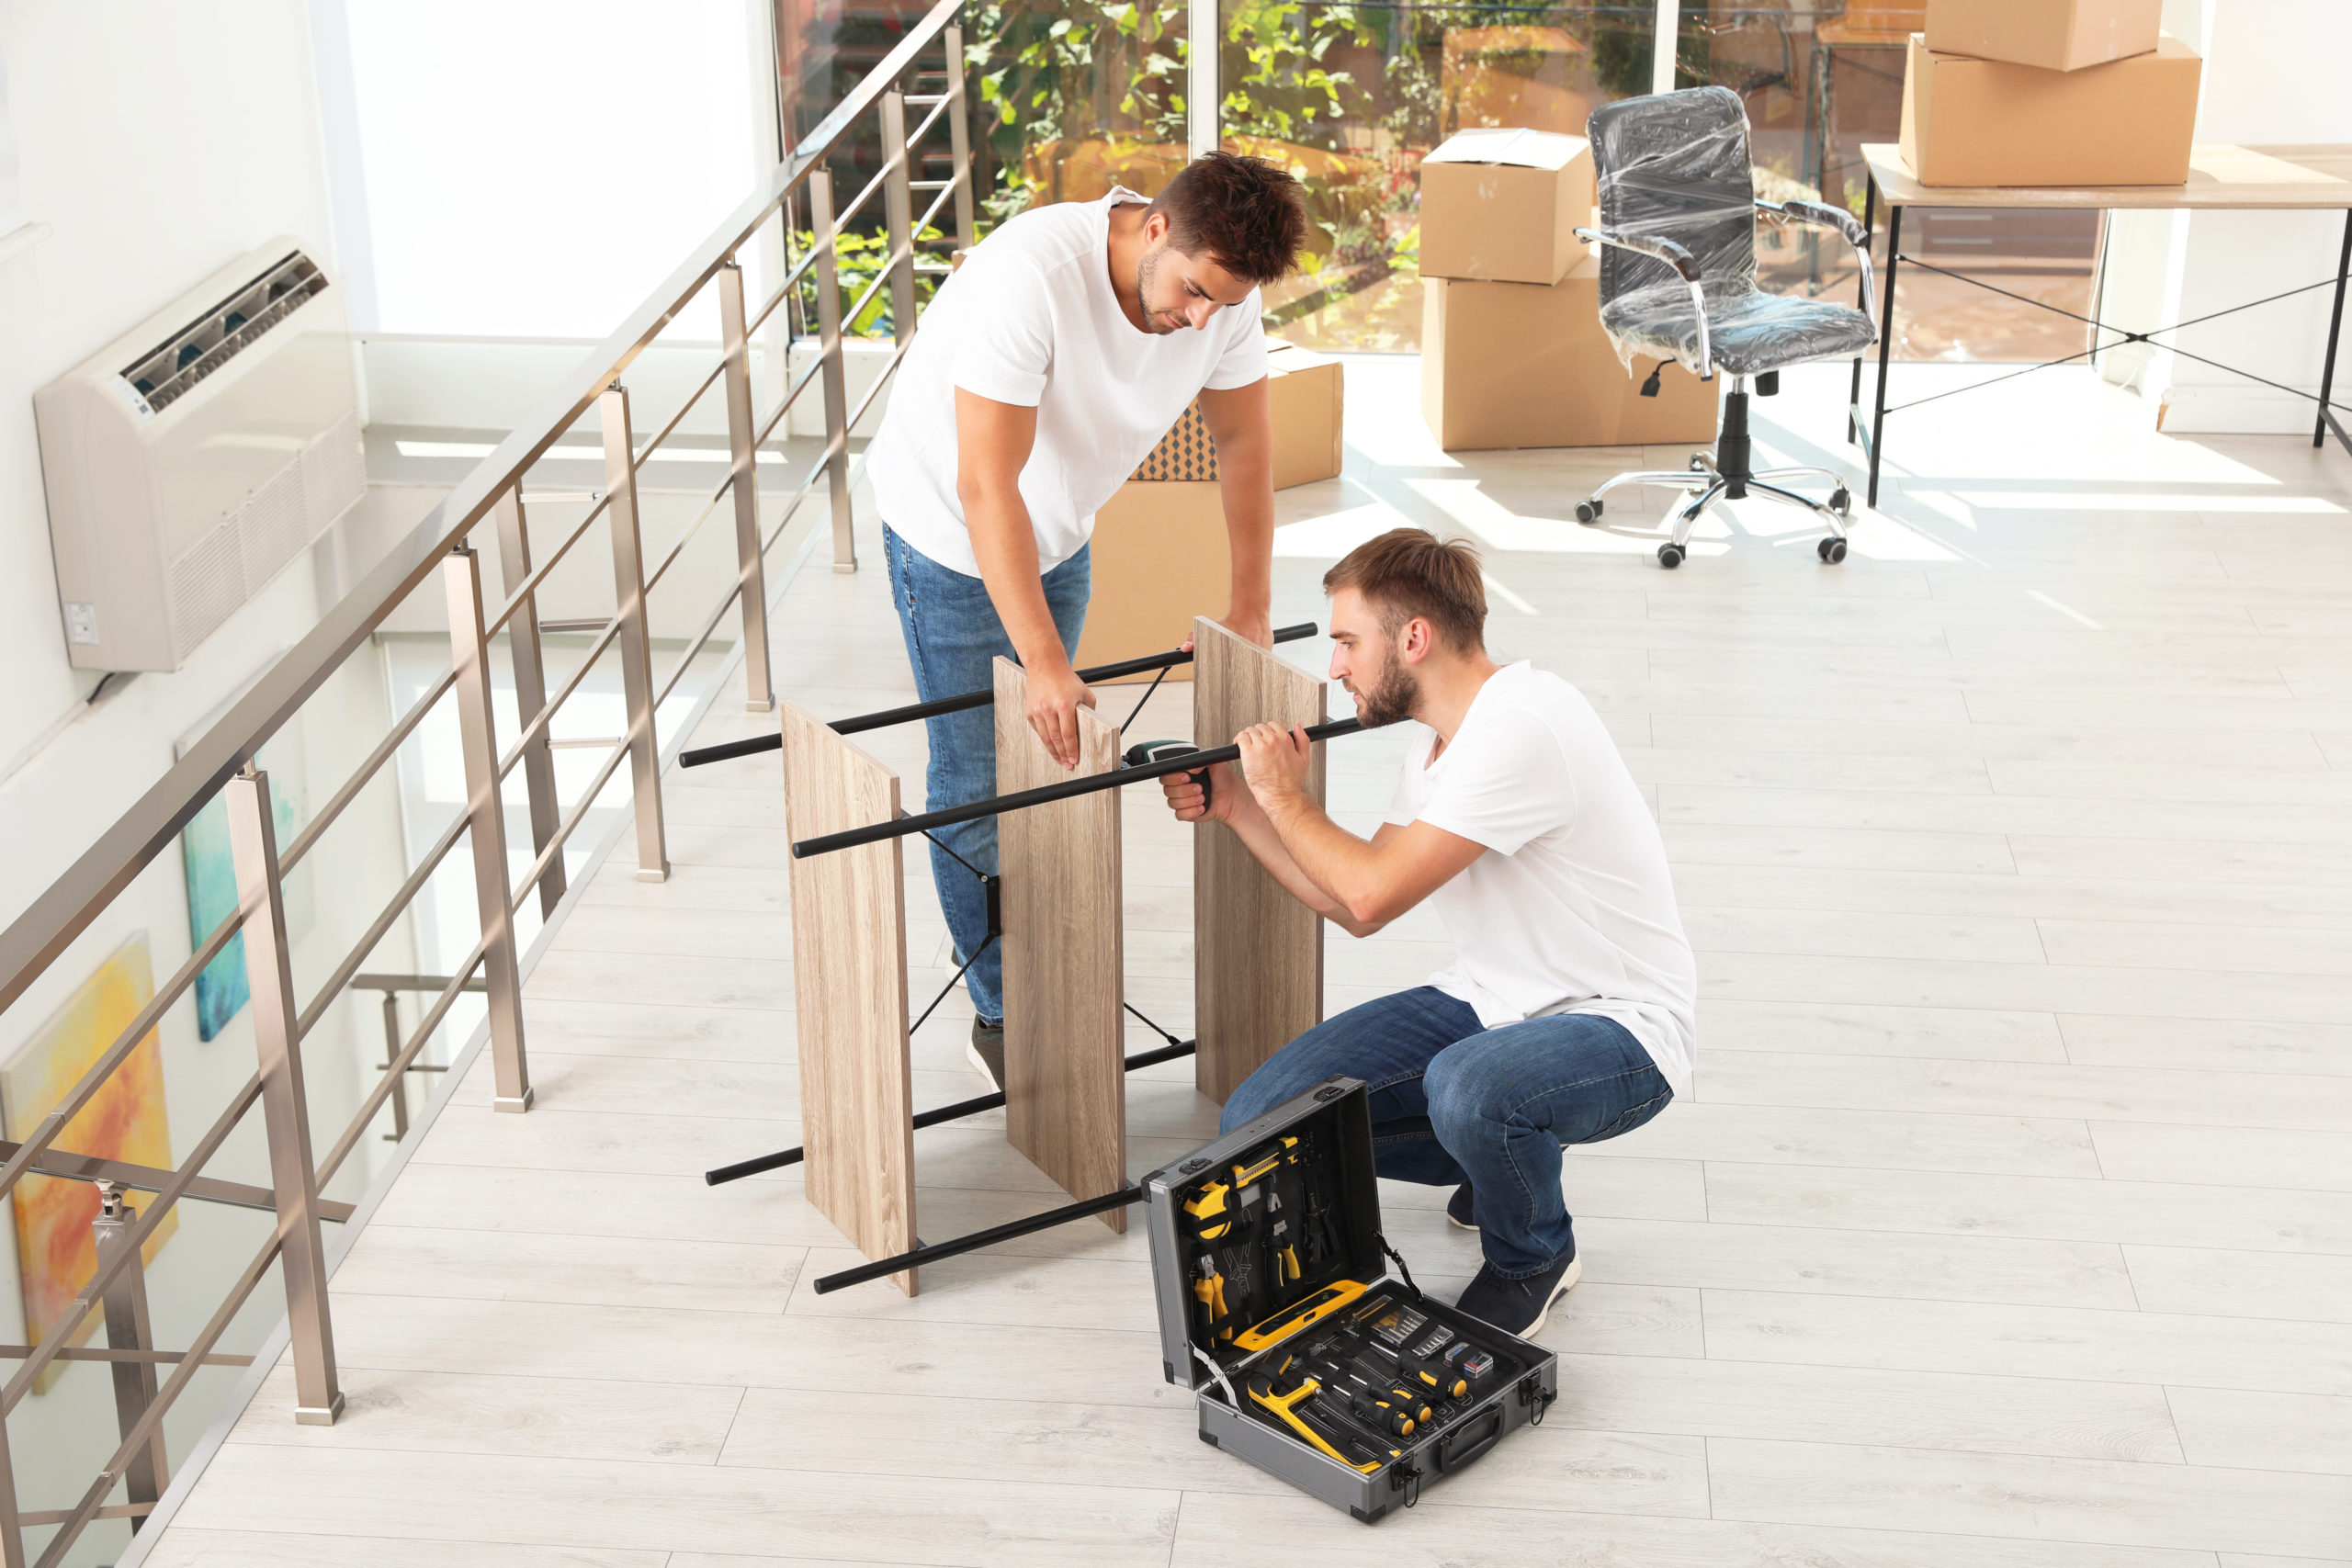 Professional workers disassembling rack in office. Moving service